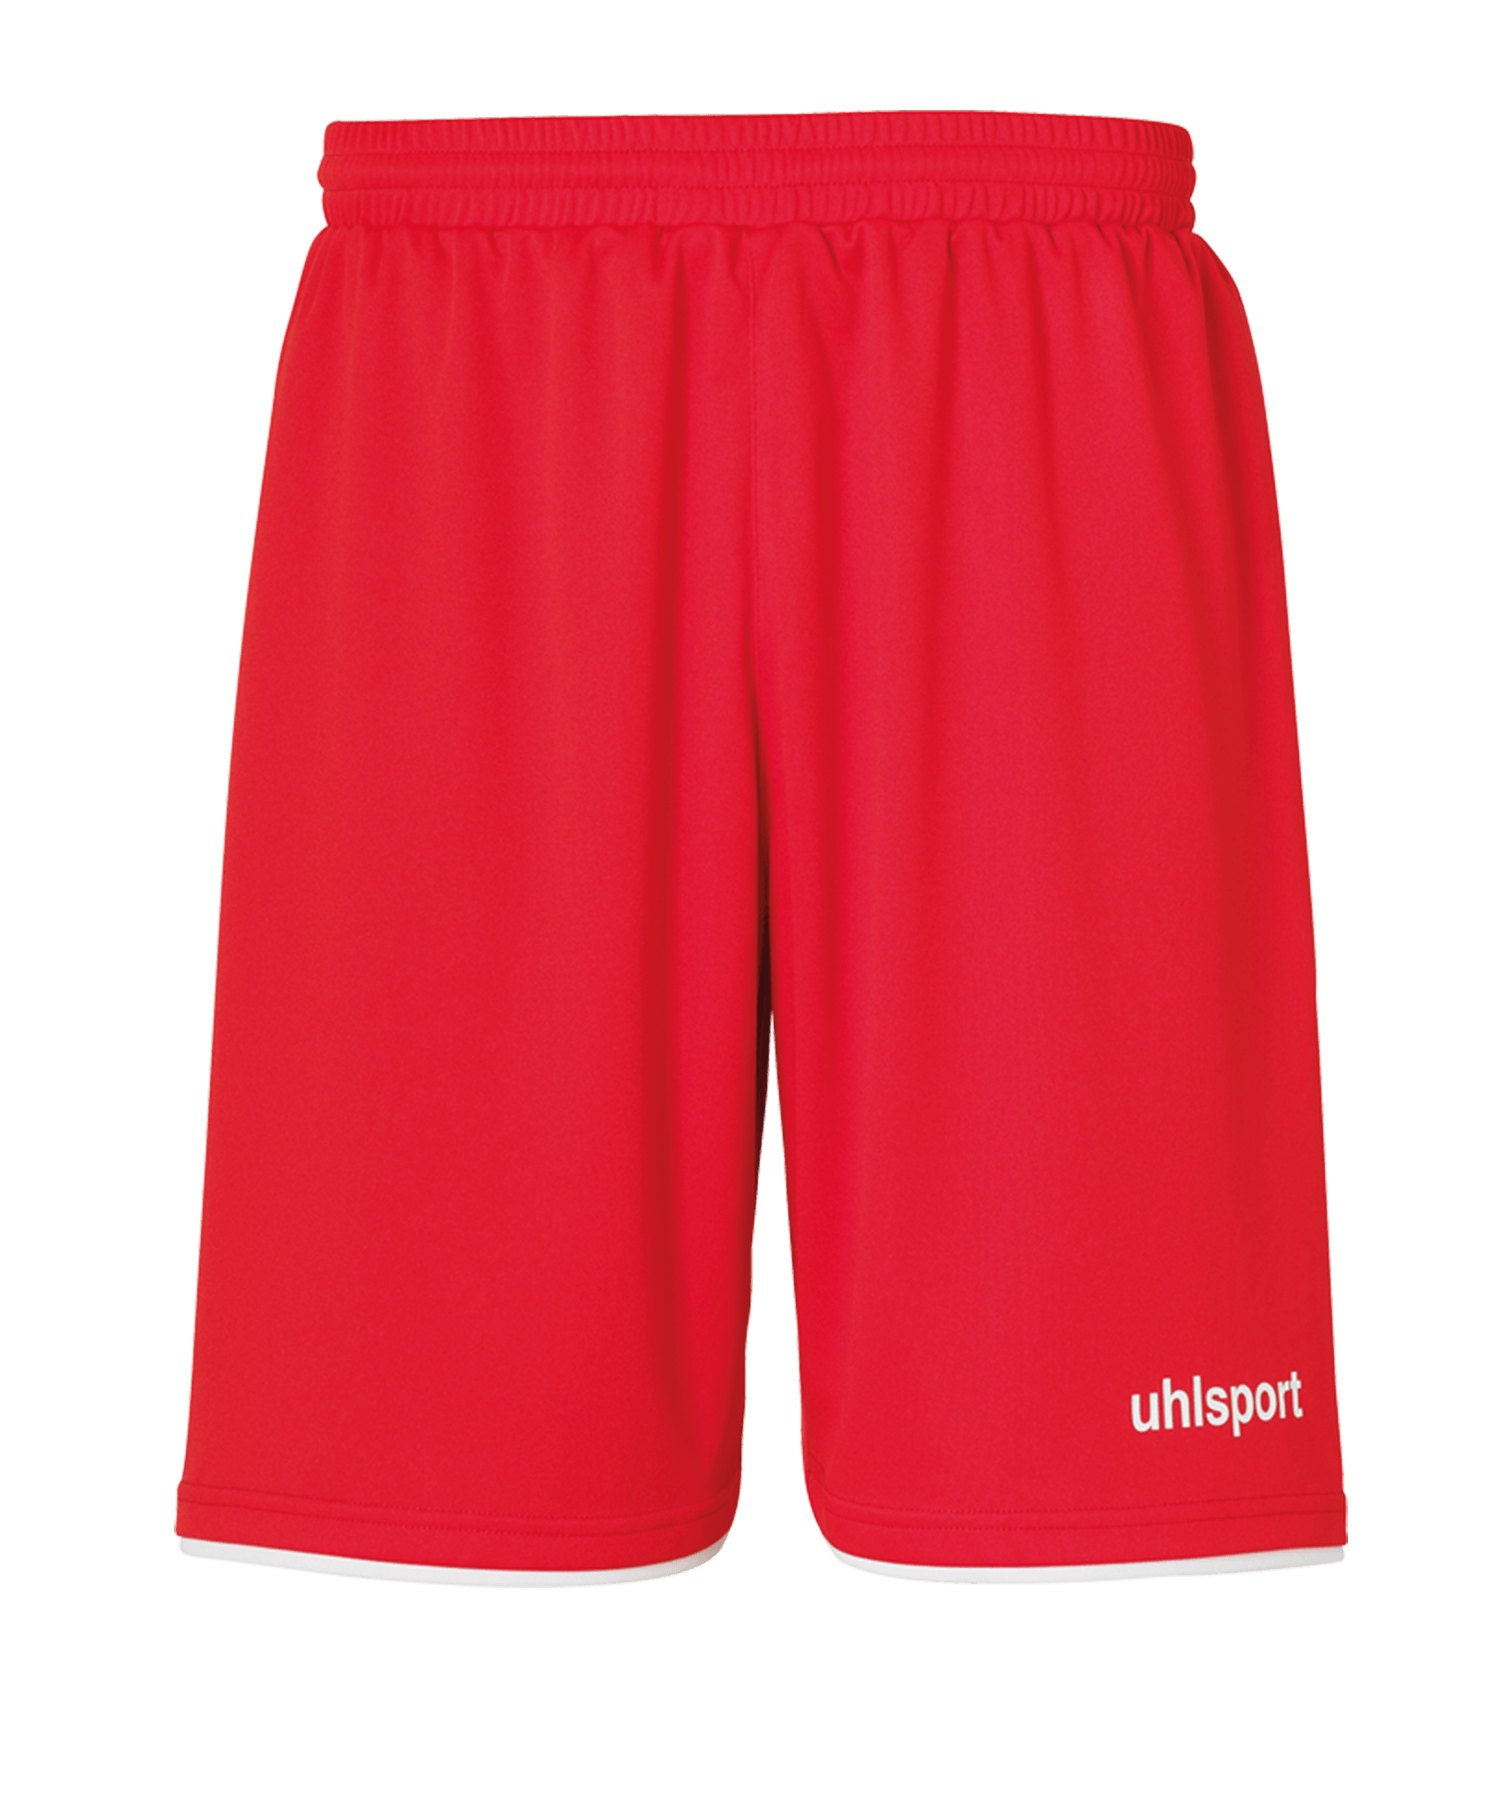 Uhlsport Club Short Kids Rot Weiss F04 - rot